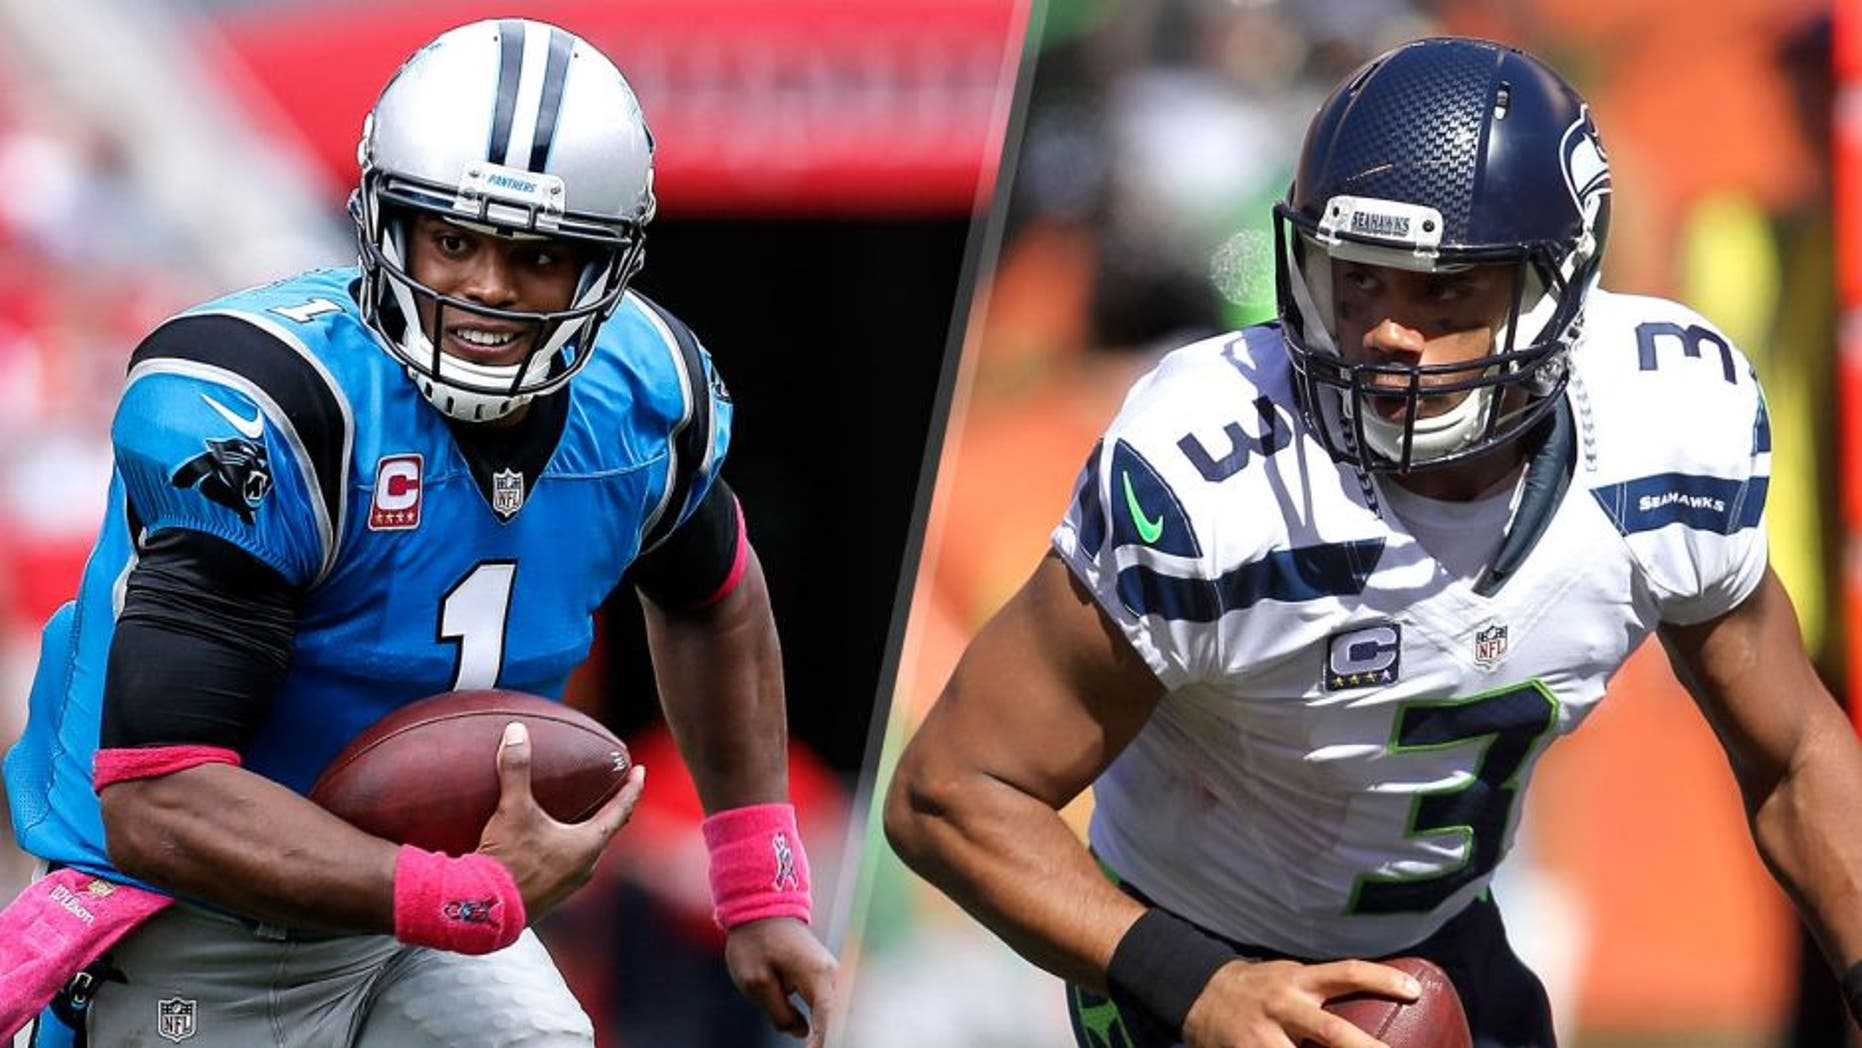 TAMPA, FL - OCTOBER 4: Quarterback Cam Newton #1 of the Carolina Panthers on a running play during the game against the Tampa Bay Buccaneers at Raymond James Stadium on October 4, 2015 in Tampa, Florida. Panthers defeated the Buccaneers 37 to 23. (Photo by Don Juan Moore/Getty Images), CINCINNATI, OH - OCTOBER 11: Russell Wilson #3 of the Seattle Seahawks runs with the ball during the second quarter of the game against the Cincinnati Bengals at Paul Brown Stadium on October 11, 2015 in Cincinnati, Ohio. (Photo by John Grieshop/Getty Images)